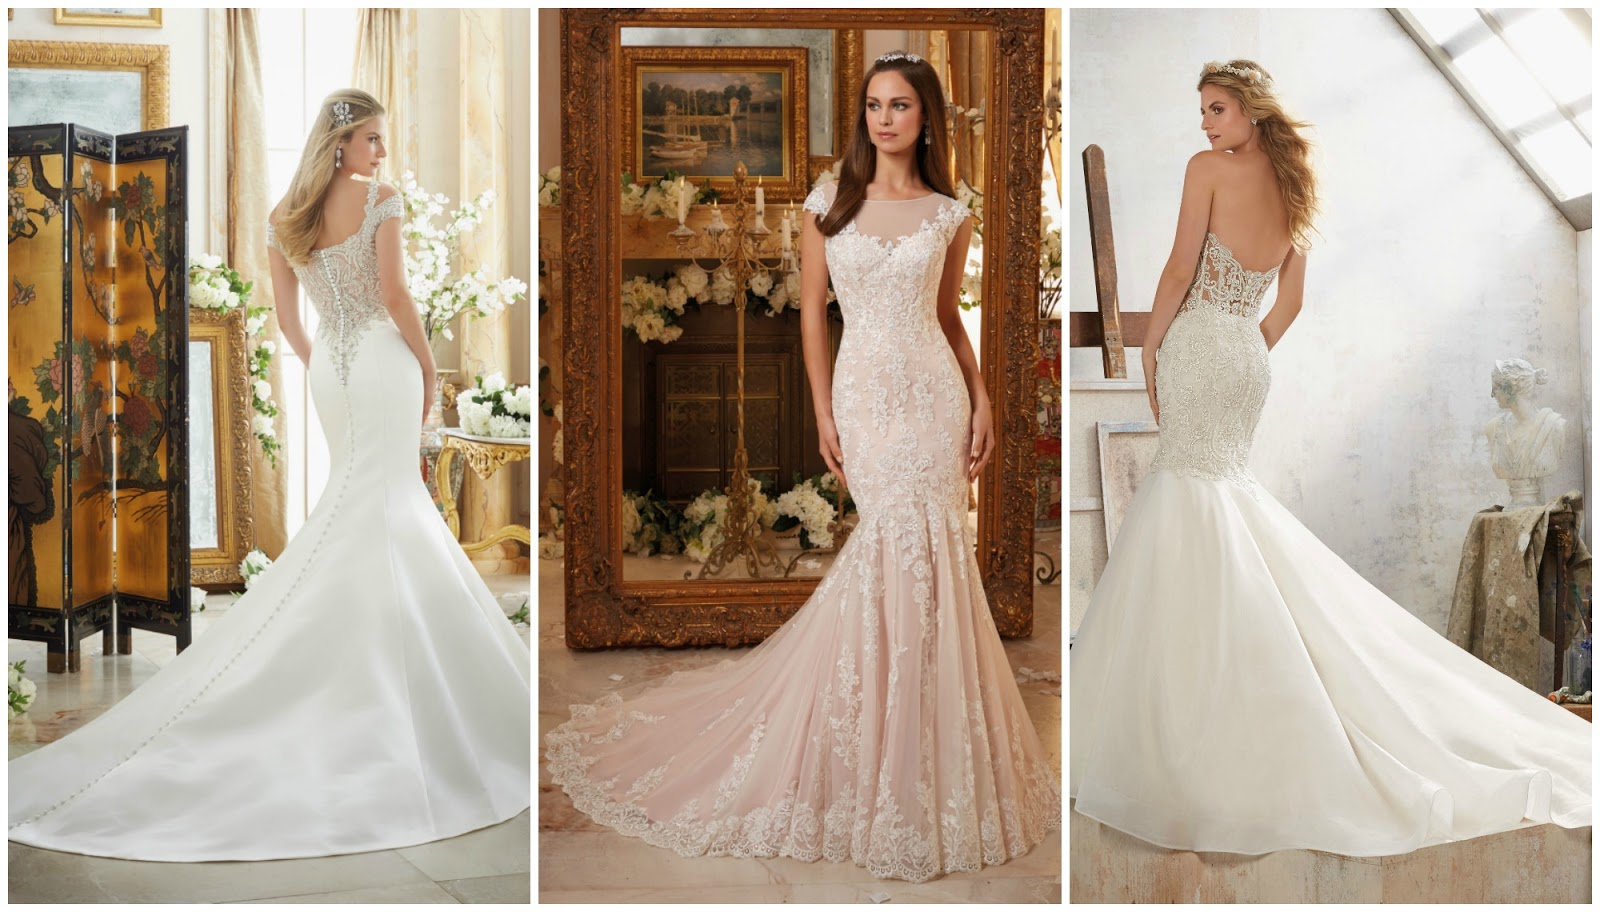 Brides of america online store wedding dresses come in for Wedding dresses miami florida